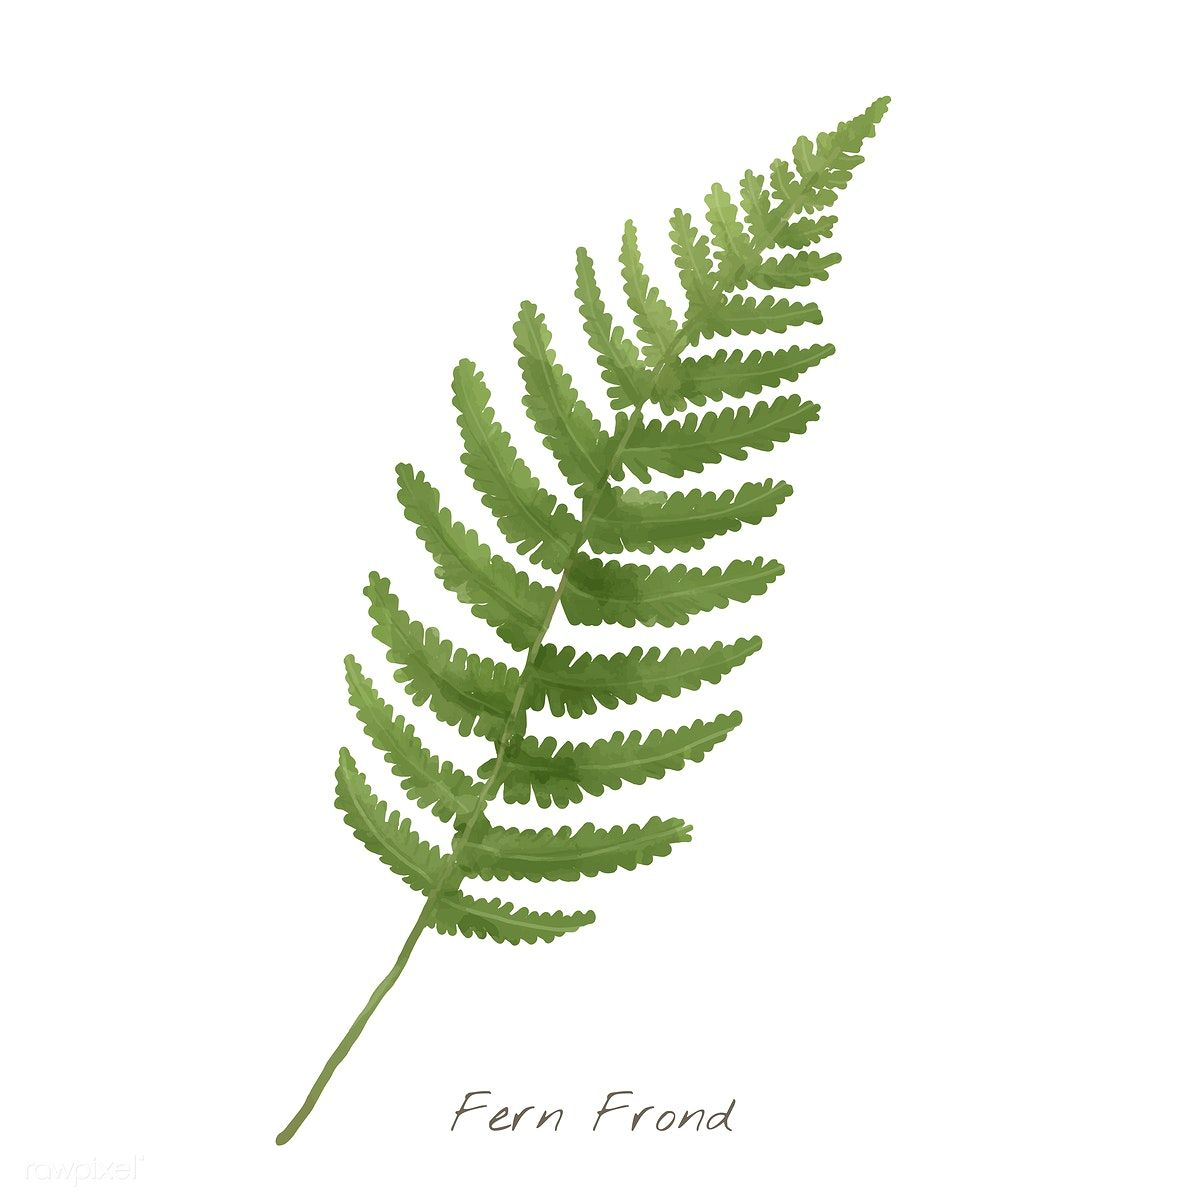 Leaf isolated on white. Fern clipart fern frond